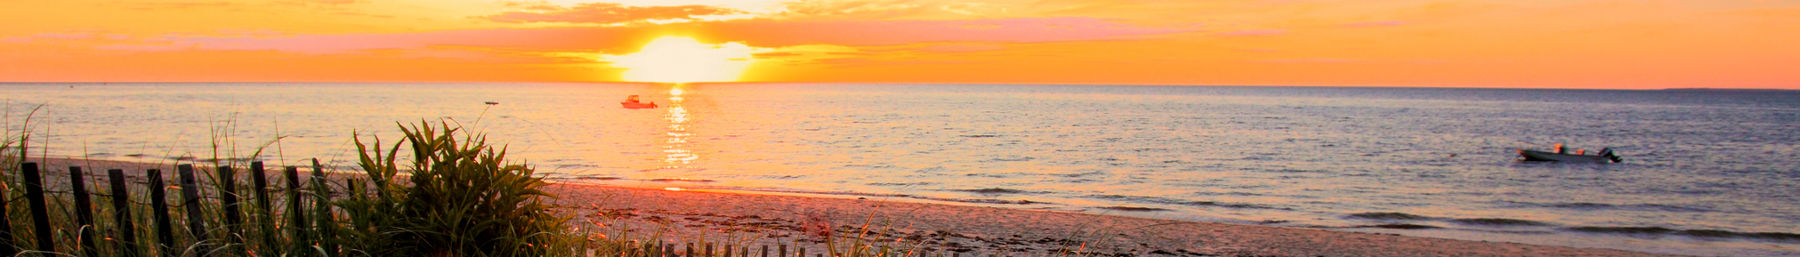 Massachusetts banner sunset on the beach.jpg